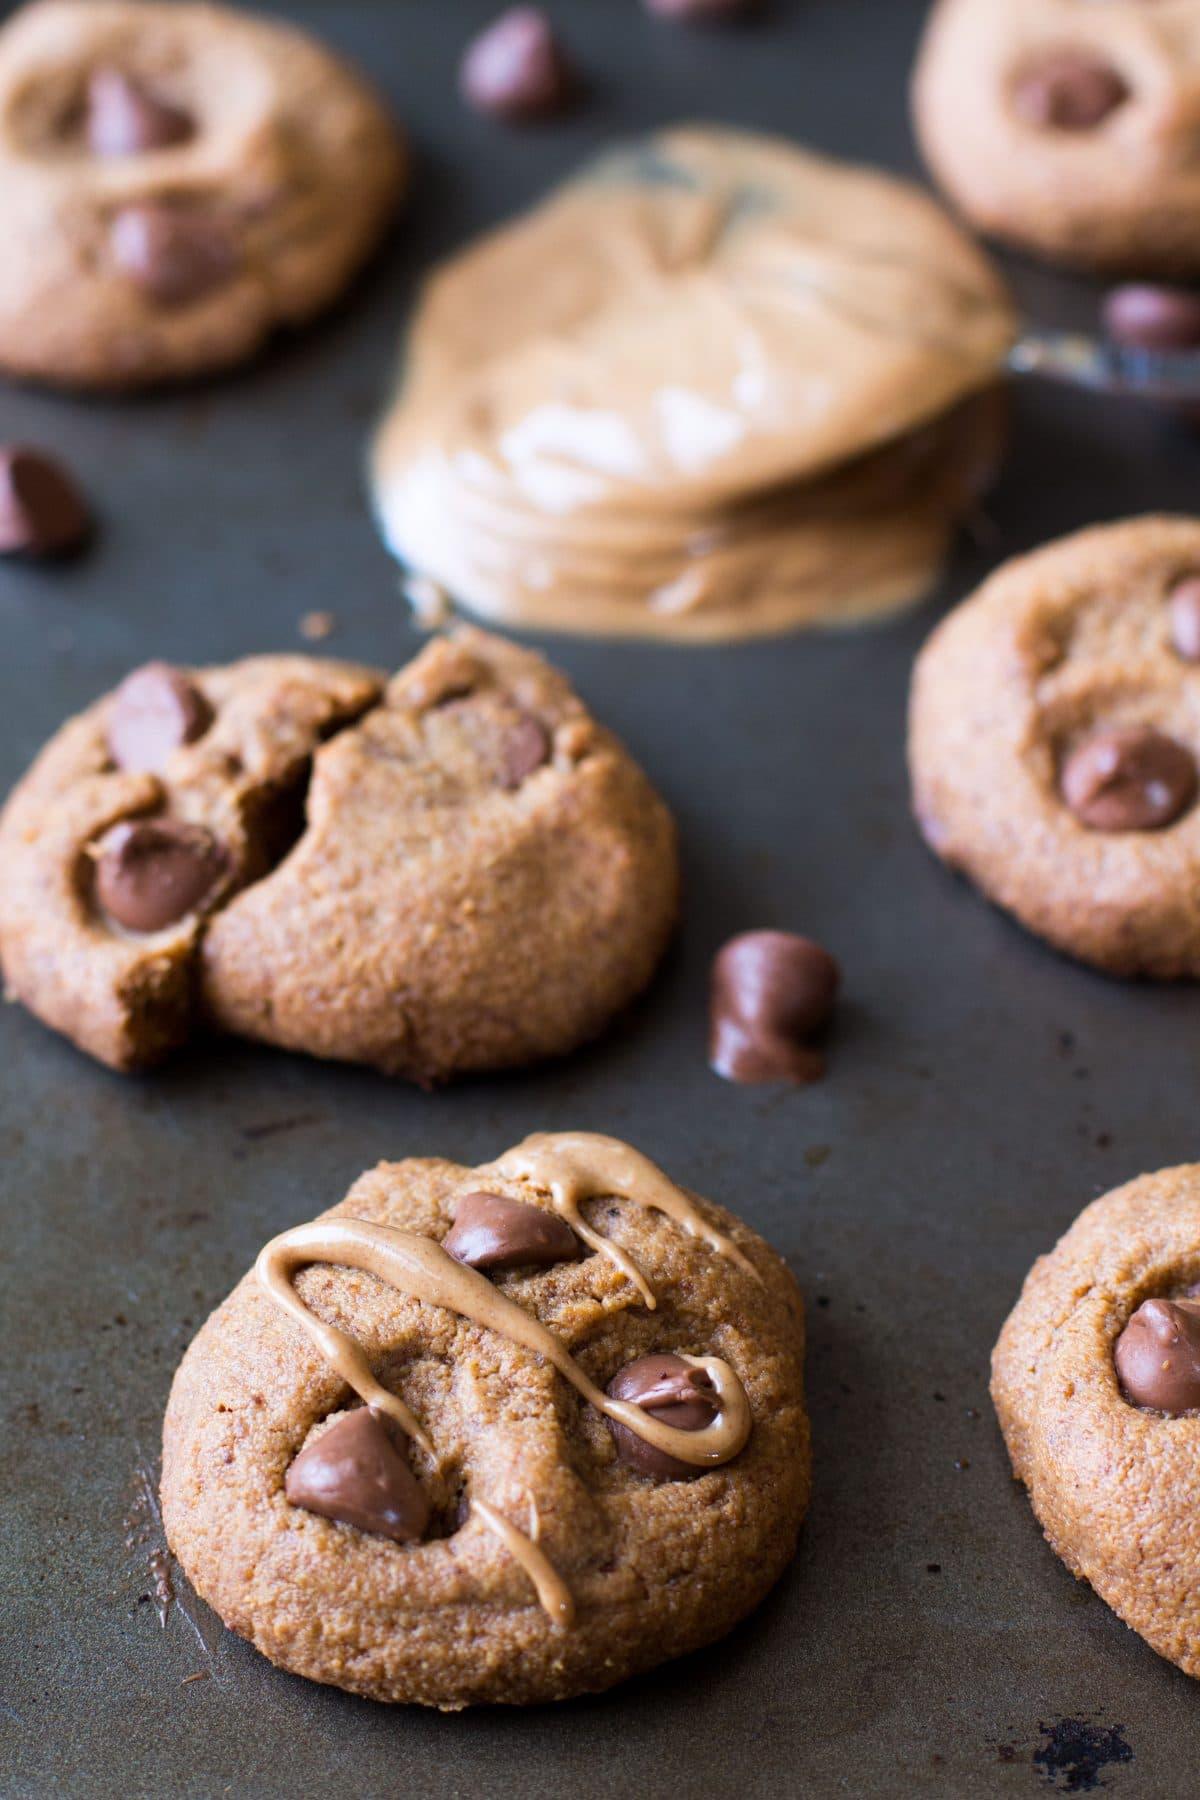 chocolate-chip-cookies-image-low-carb